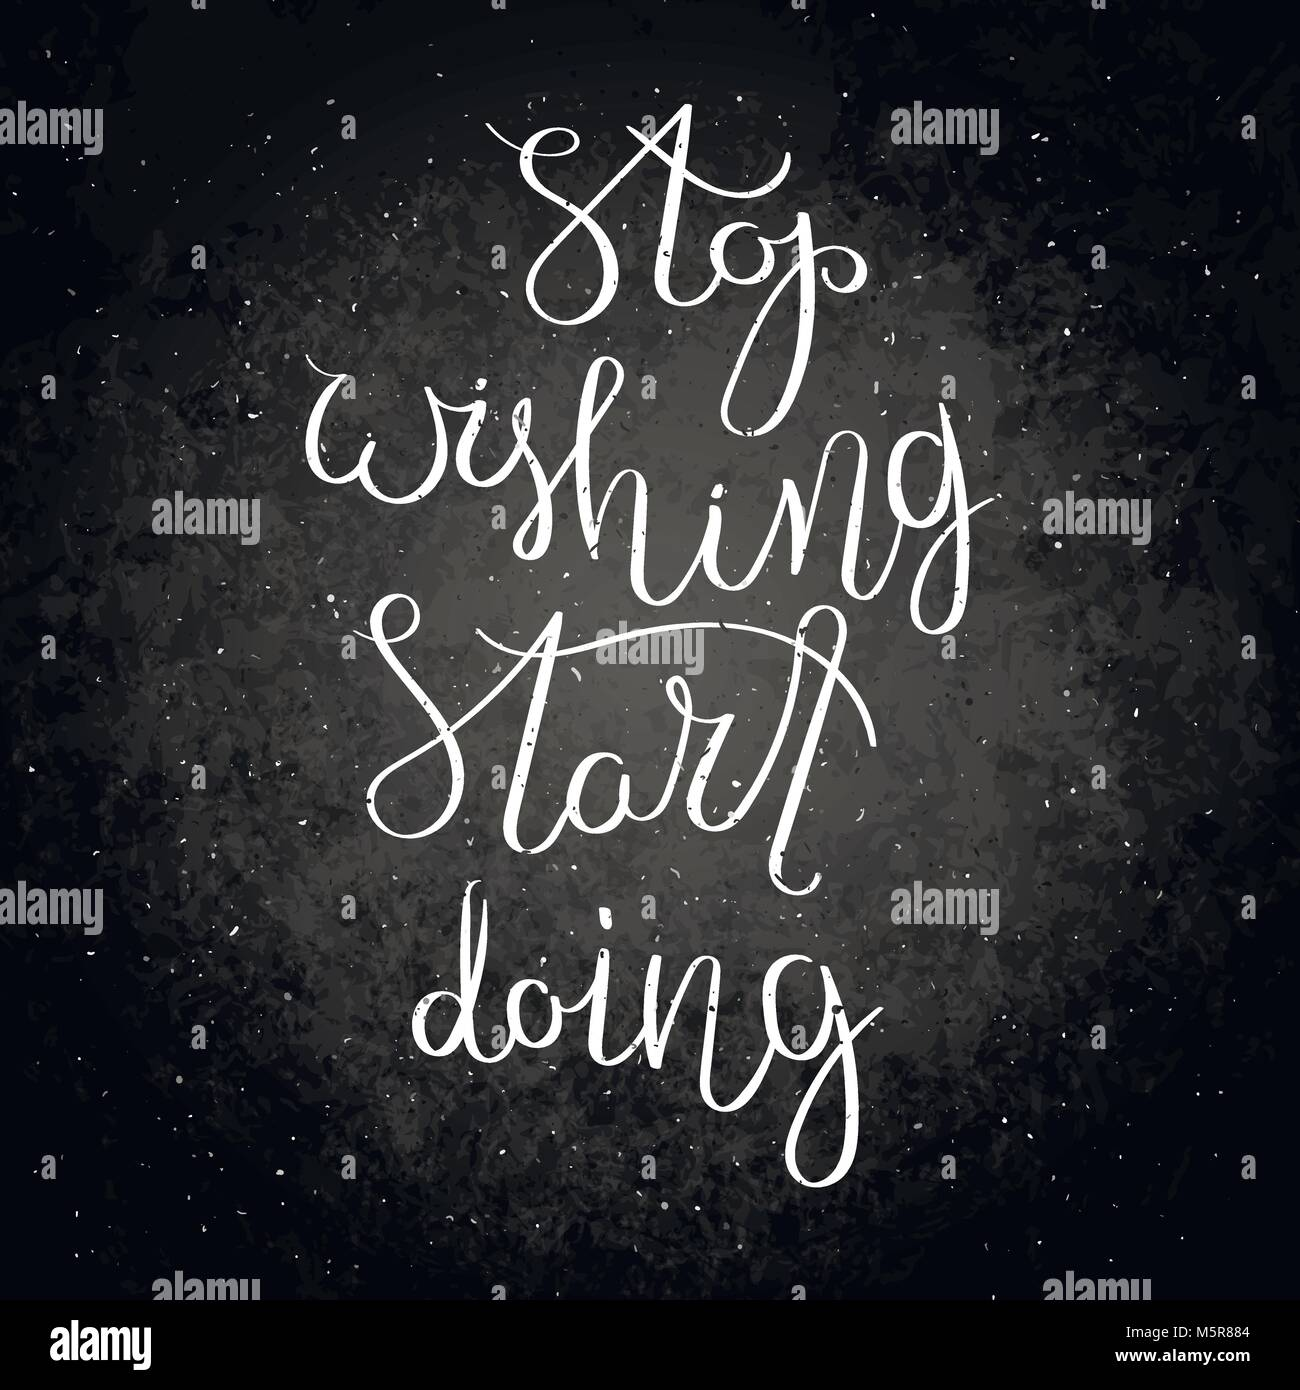 Stop Wishing, Start Doing. Inspirational Vector Hand Drawn Quote. Chalk  Lettering On Blackboard. Motivation Saying For Cards, Posters And T Shirt